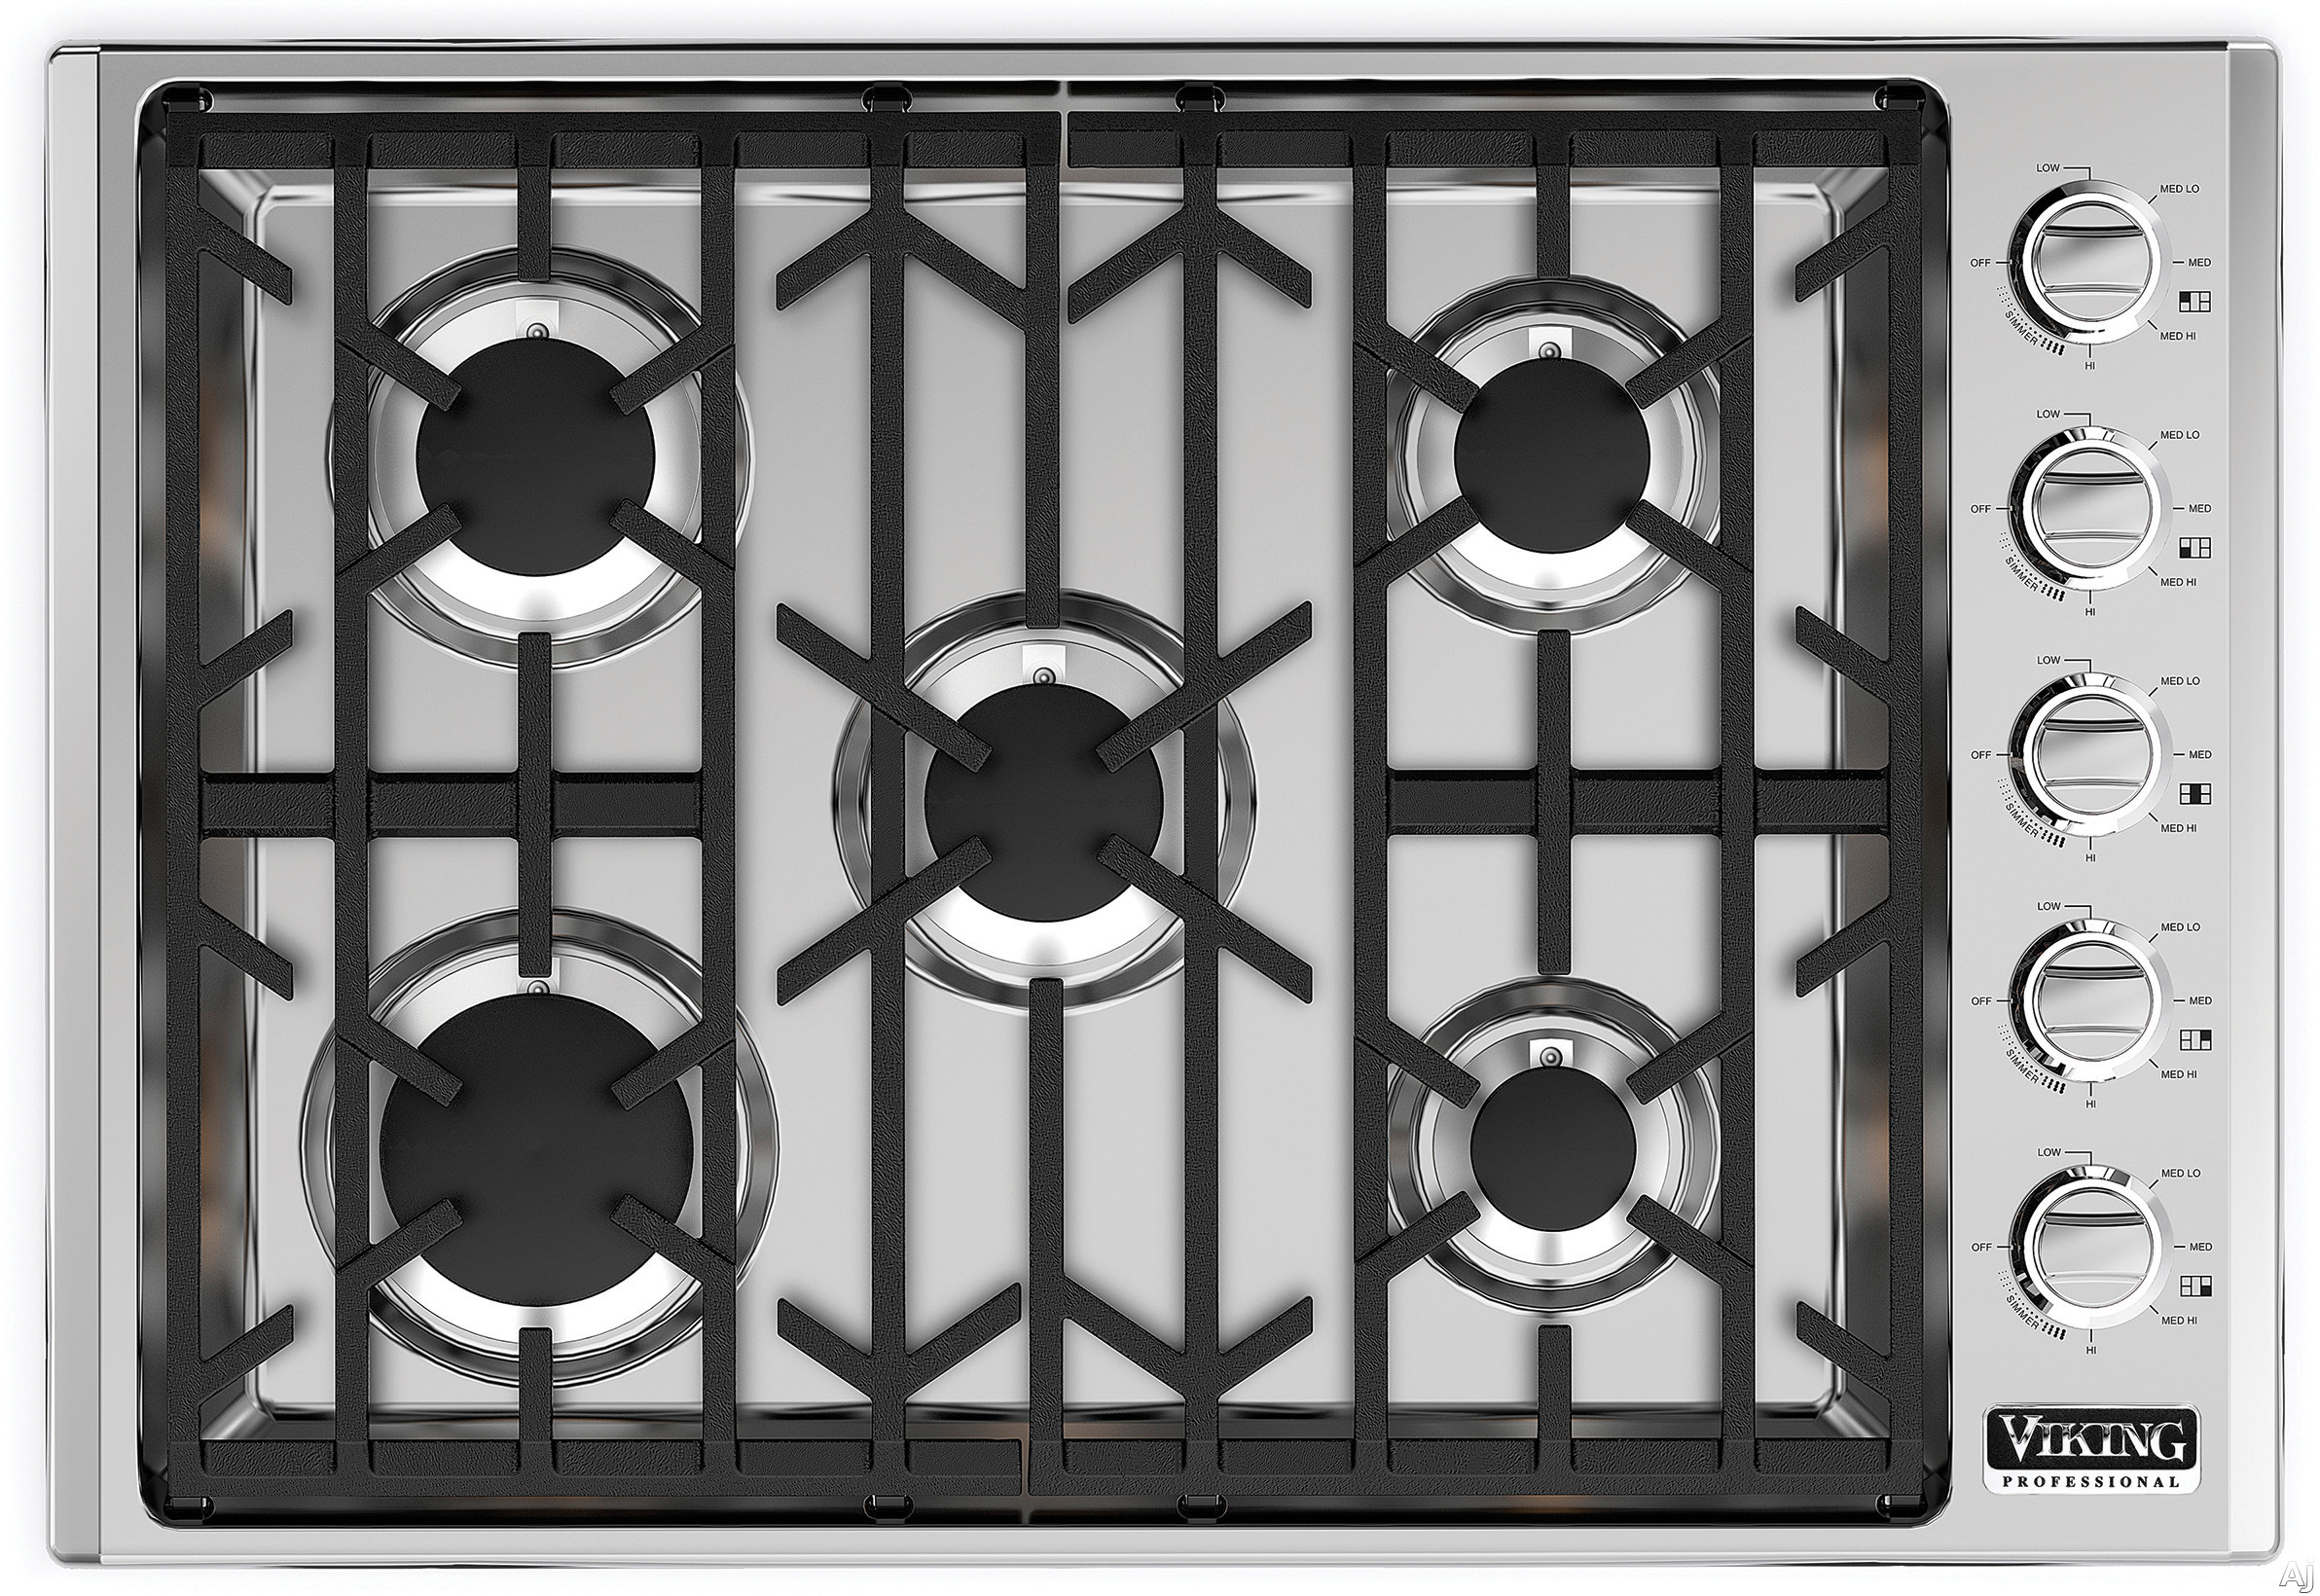 Viking Professional 5 Series VGSU5305B 30 Inch Gas Cooktop with ScratchSafeâ ¢, SureSparkâ ¢, Simmer Settings, Permanently Sealed Burners, 18,000 BTU Power Burner, Continuous Grates, Child-Proof Knob Control and Recessed Burner Pan